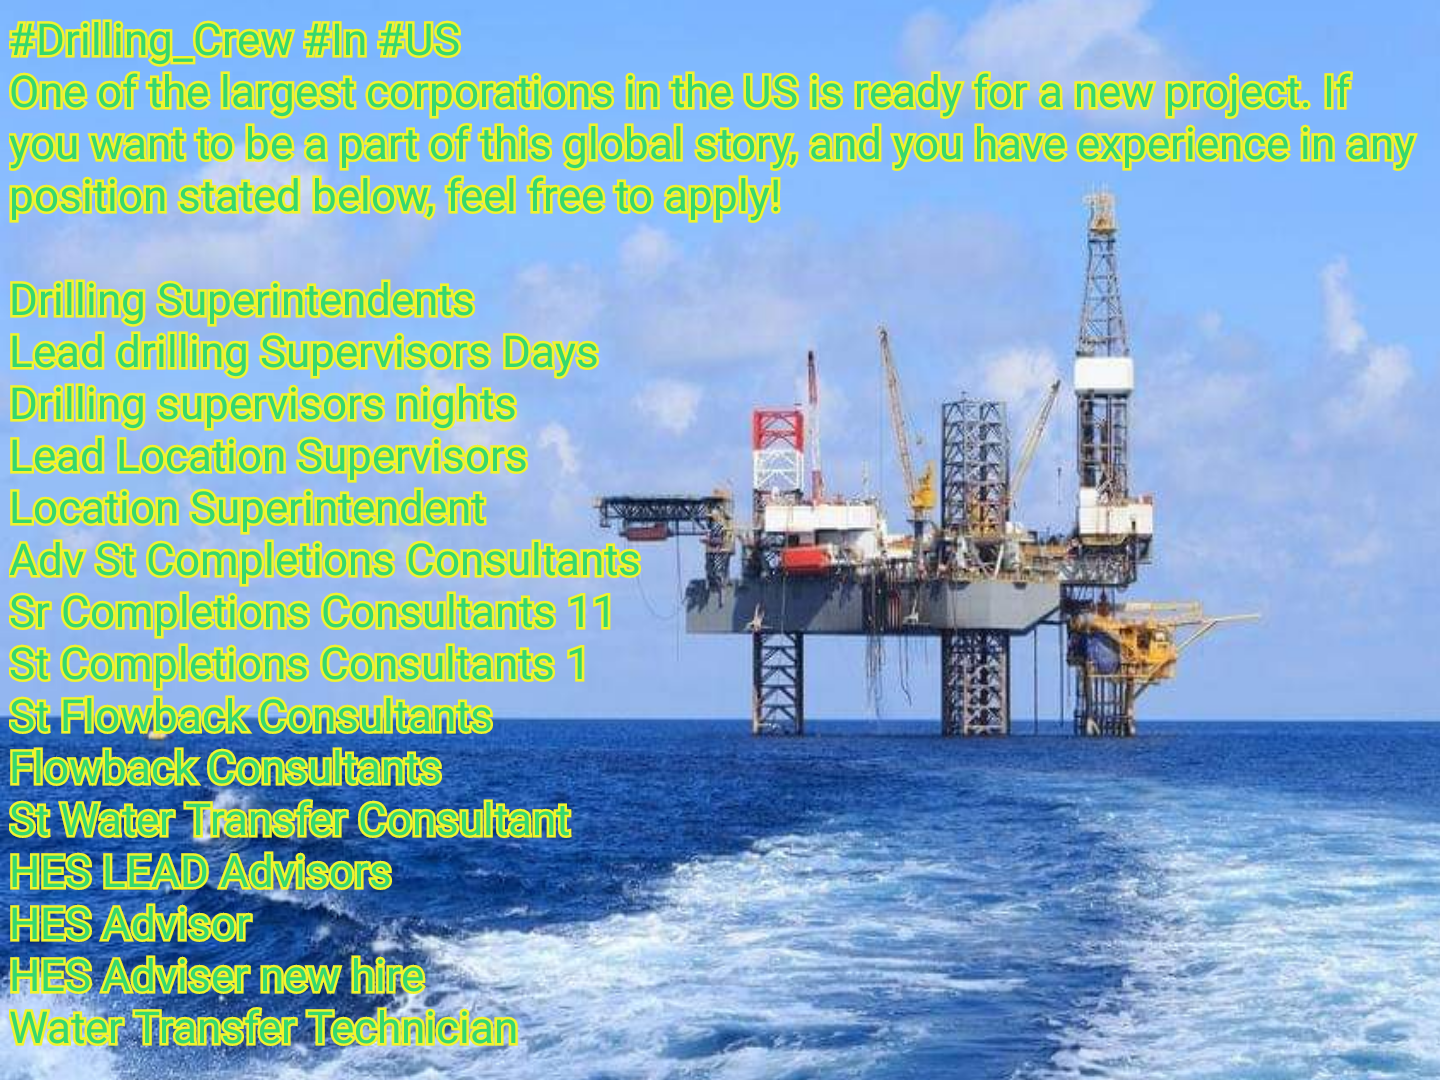 Oil and Gas Jobs: Drilling Crew